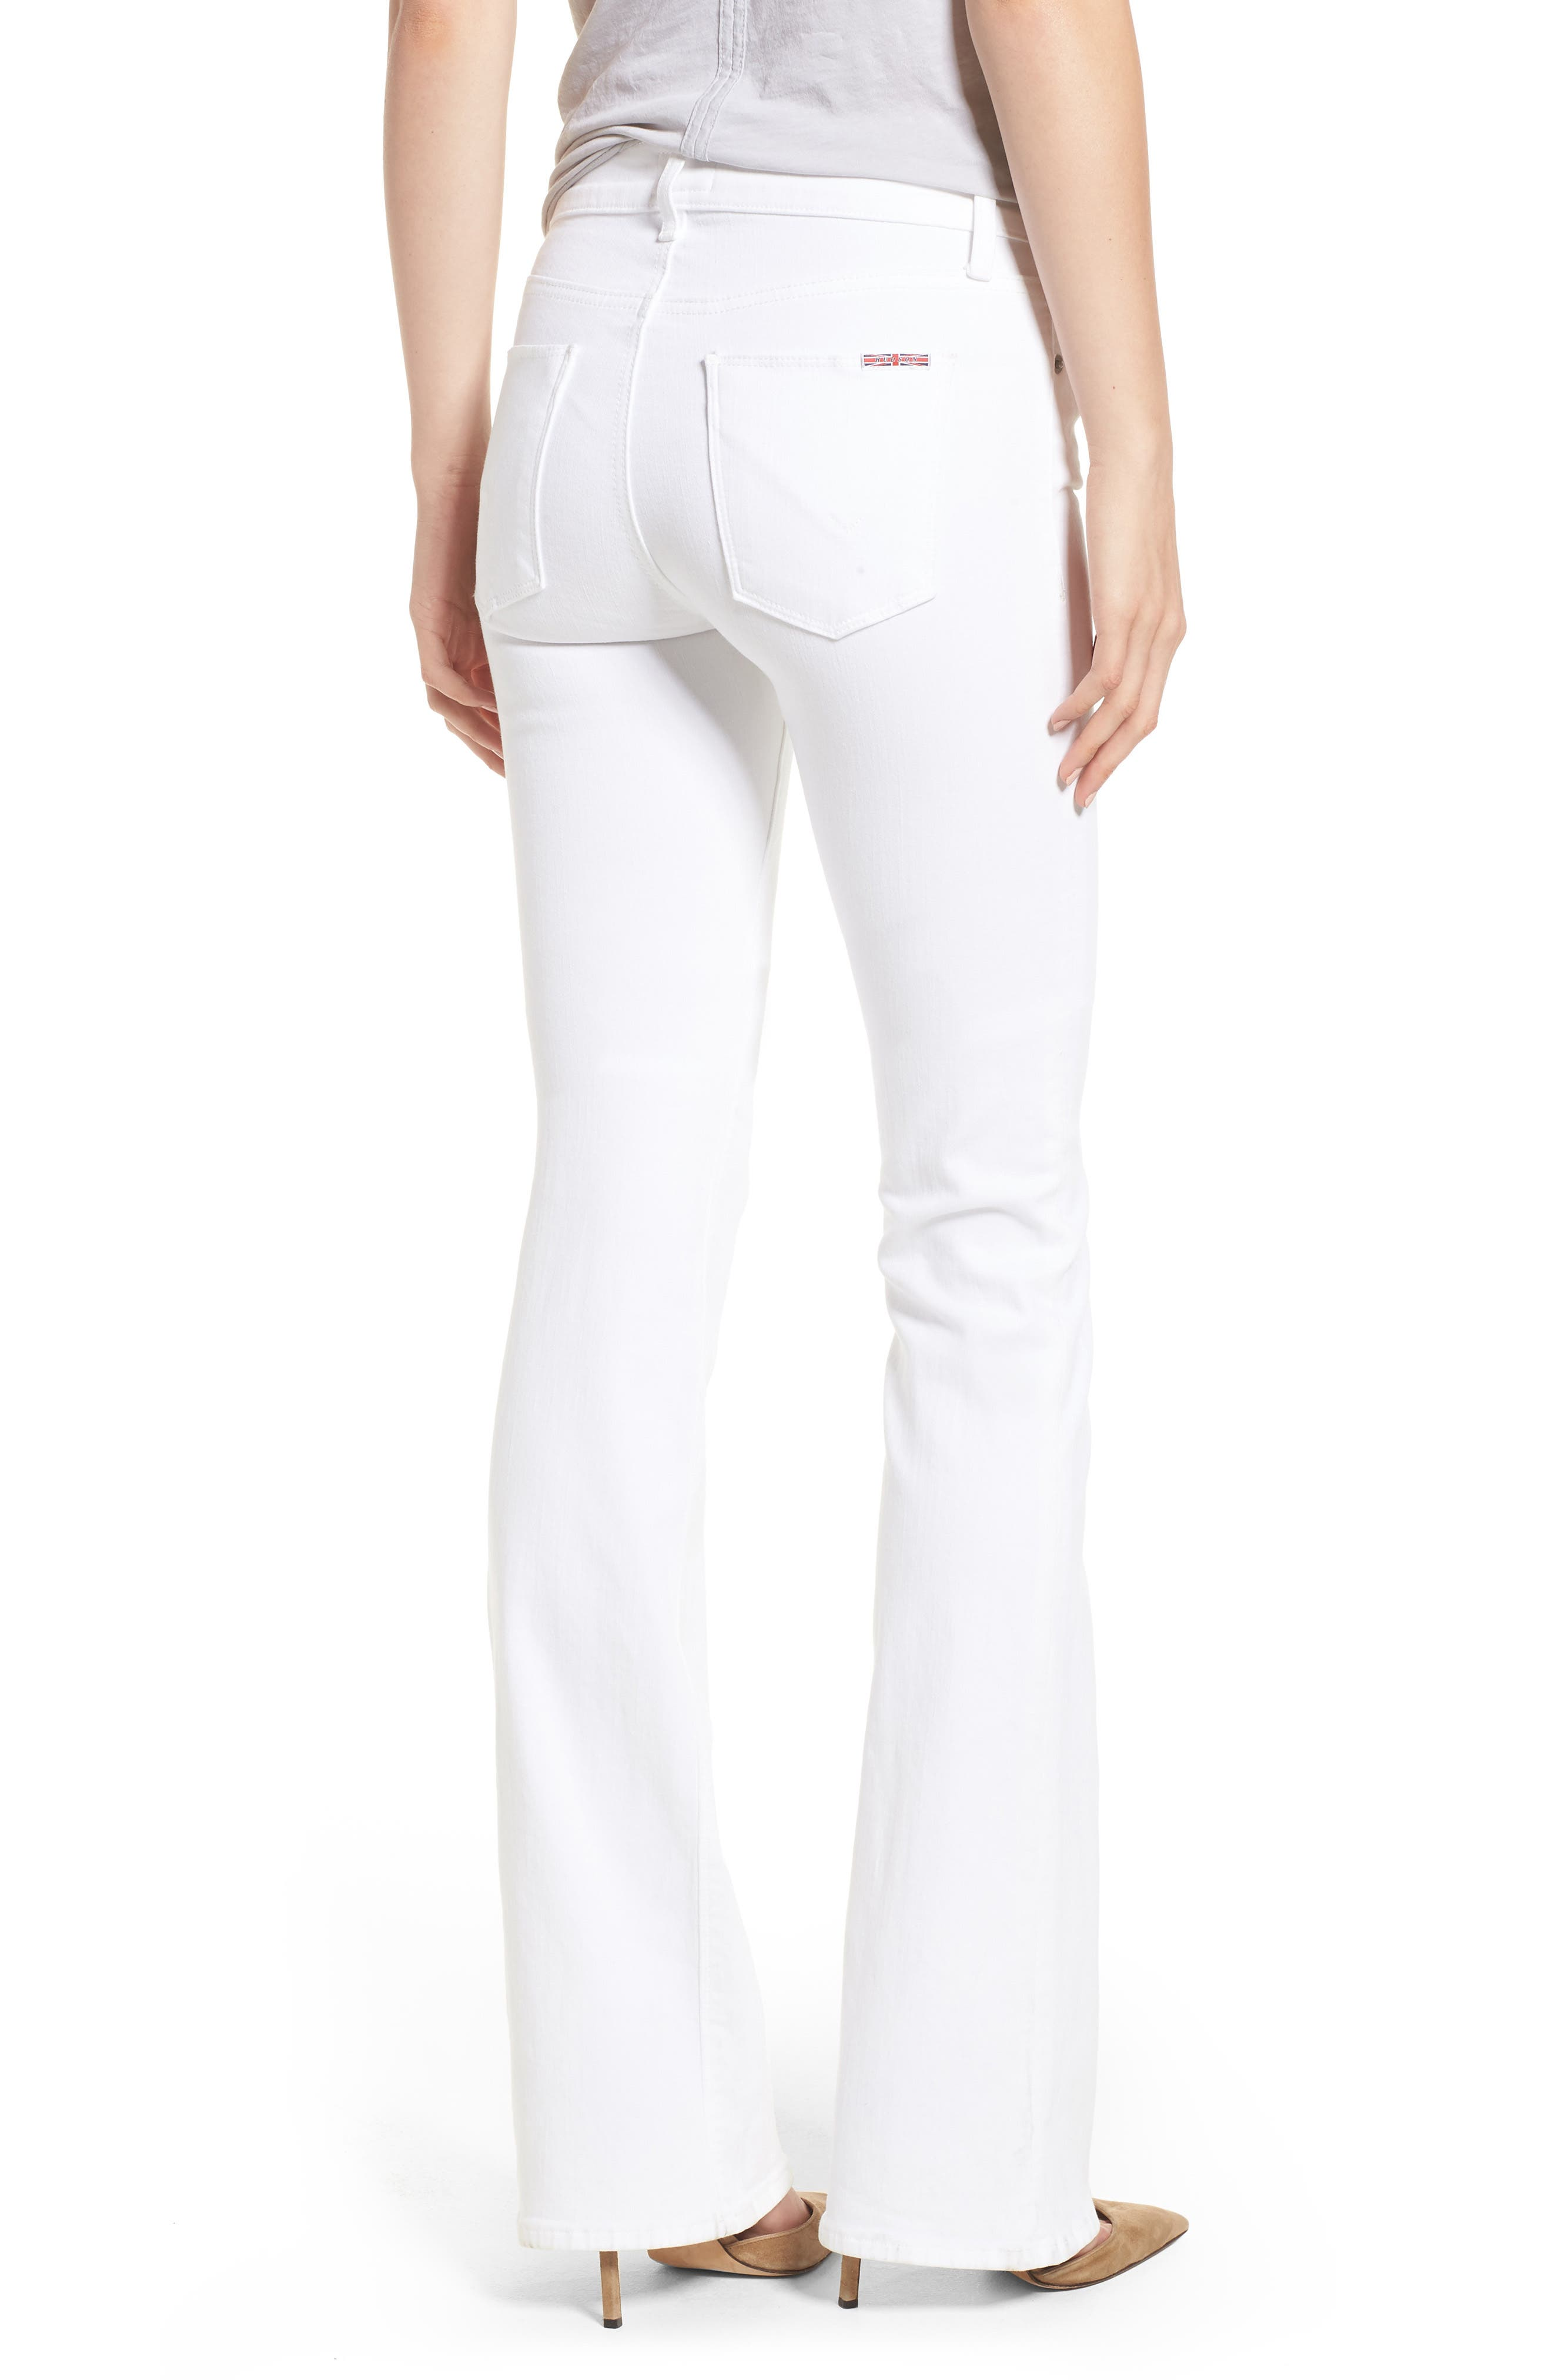 Drew Bootcut Jeans,                             Alternate thumbnail 2, color,                             Optical White